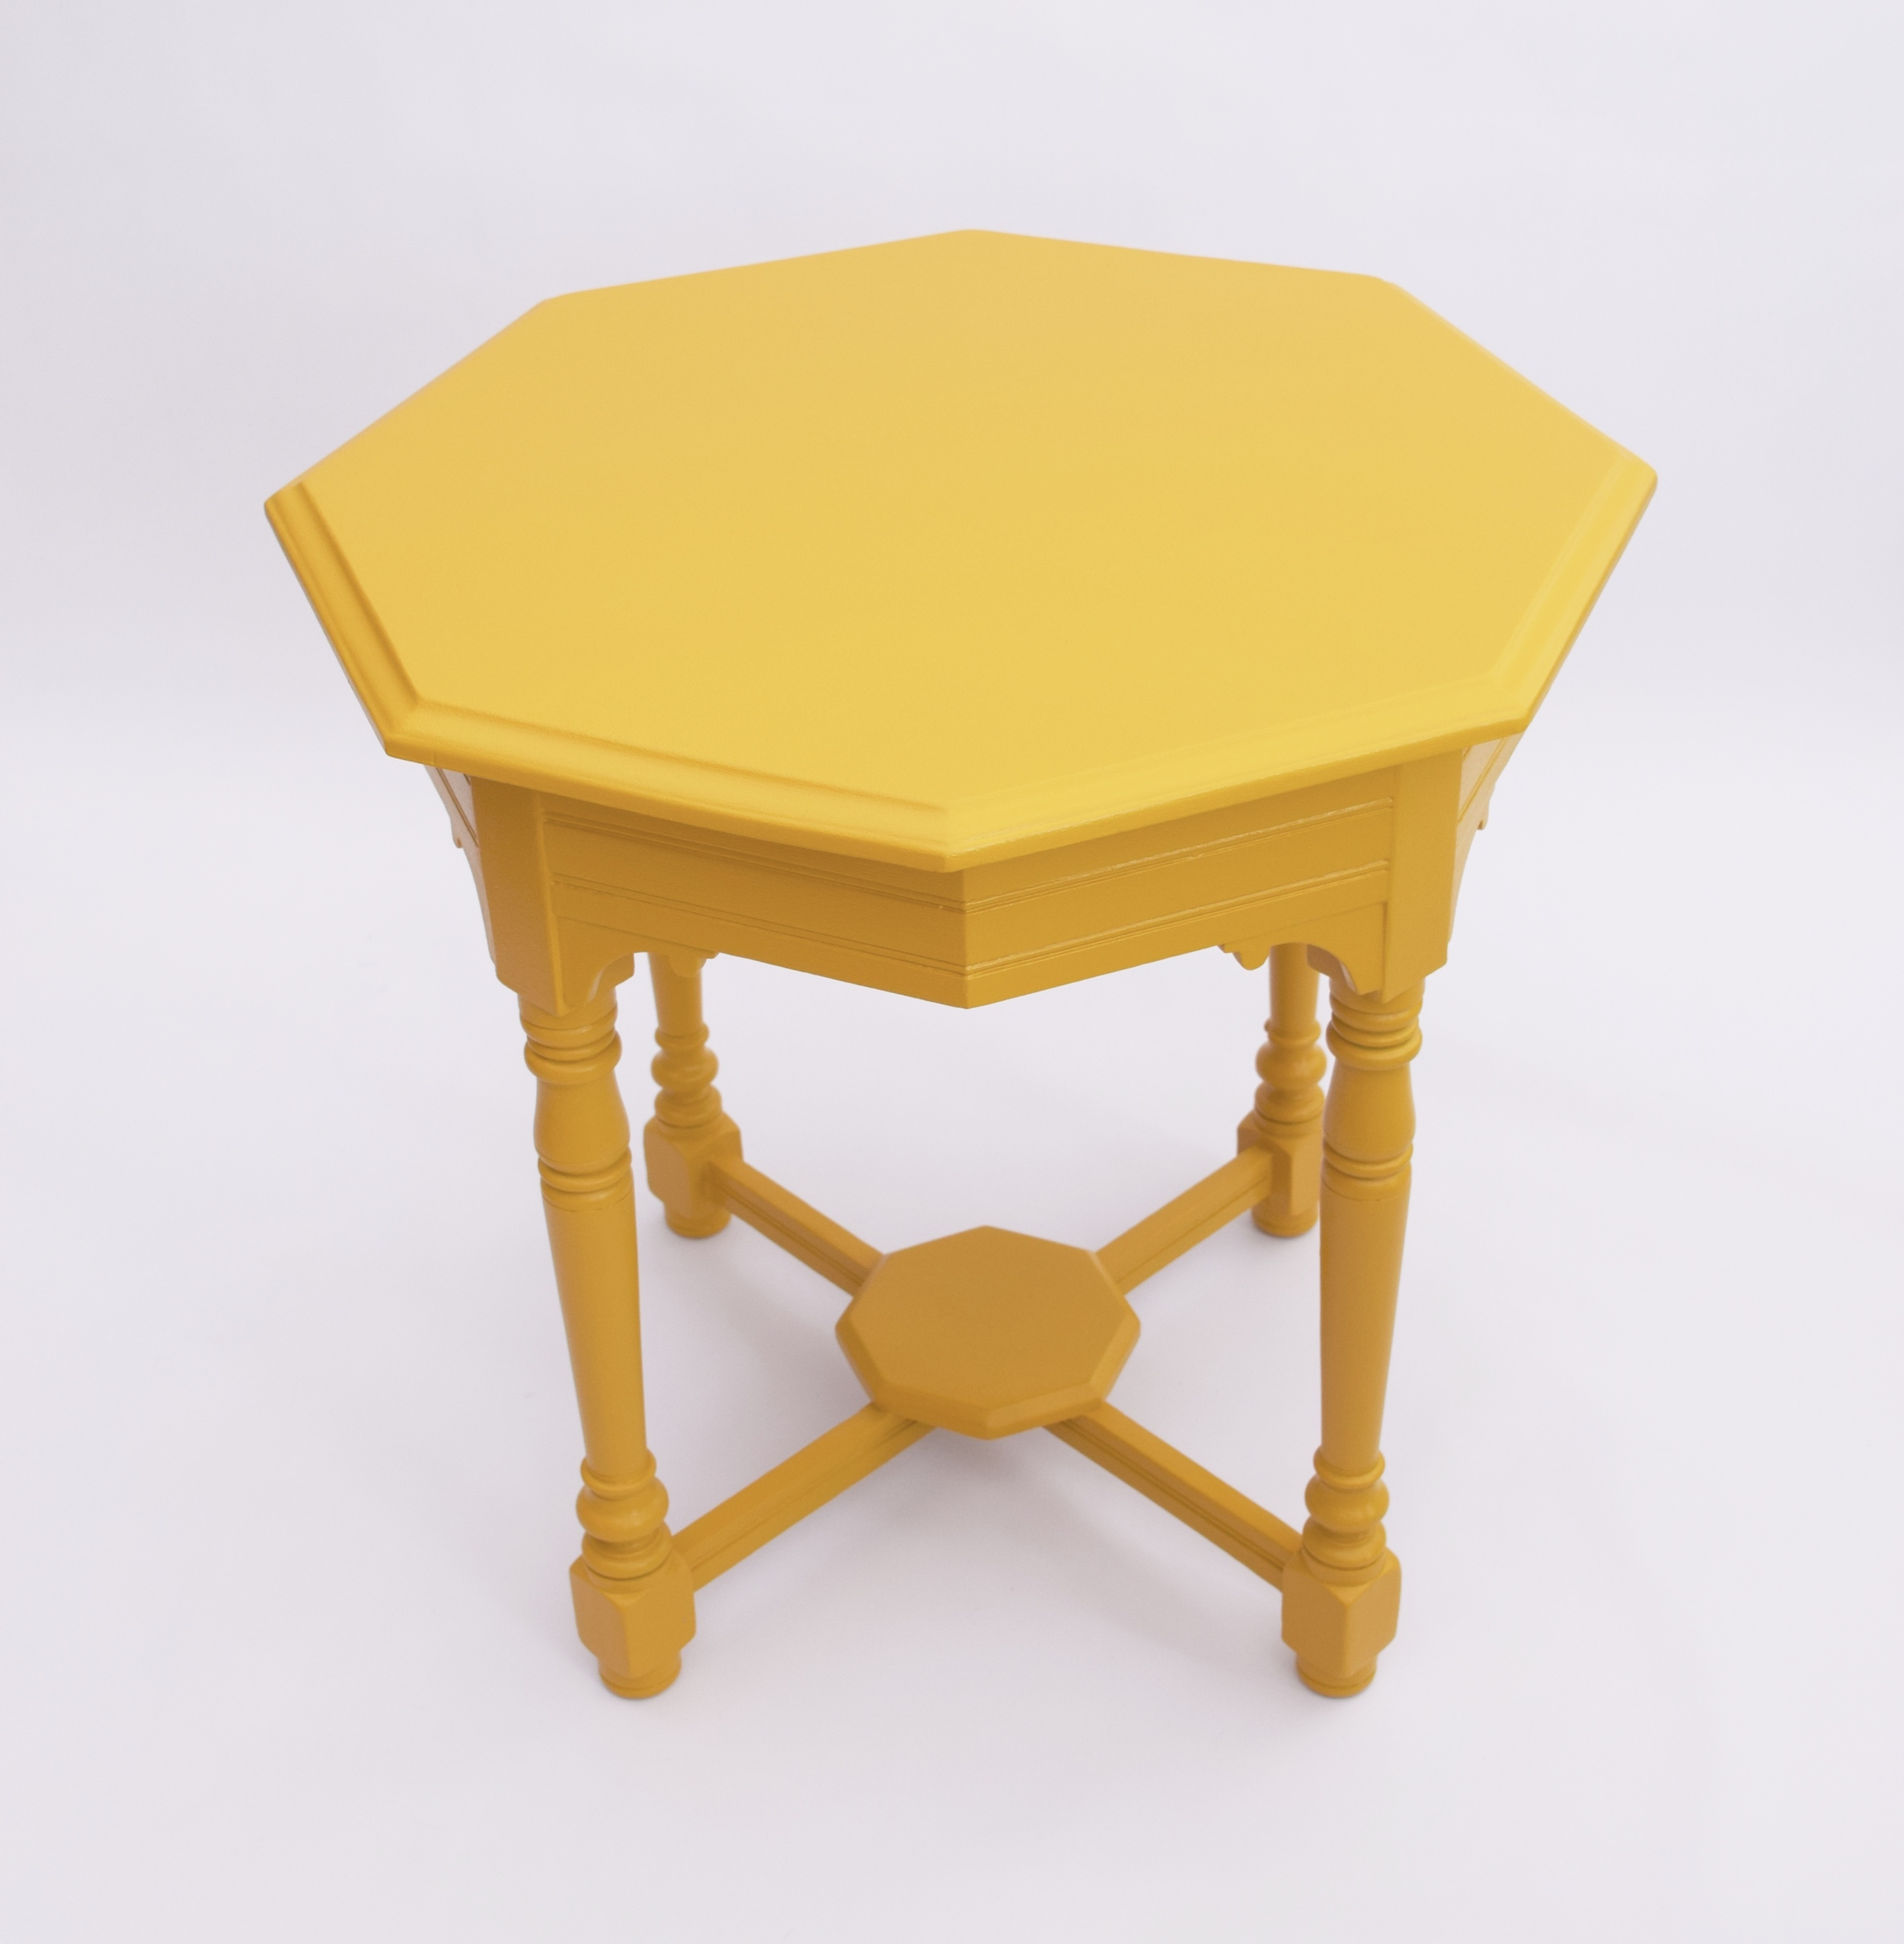 EARLY 20th CENTURY OCTAGONAL TABLE